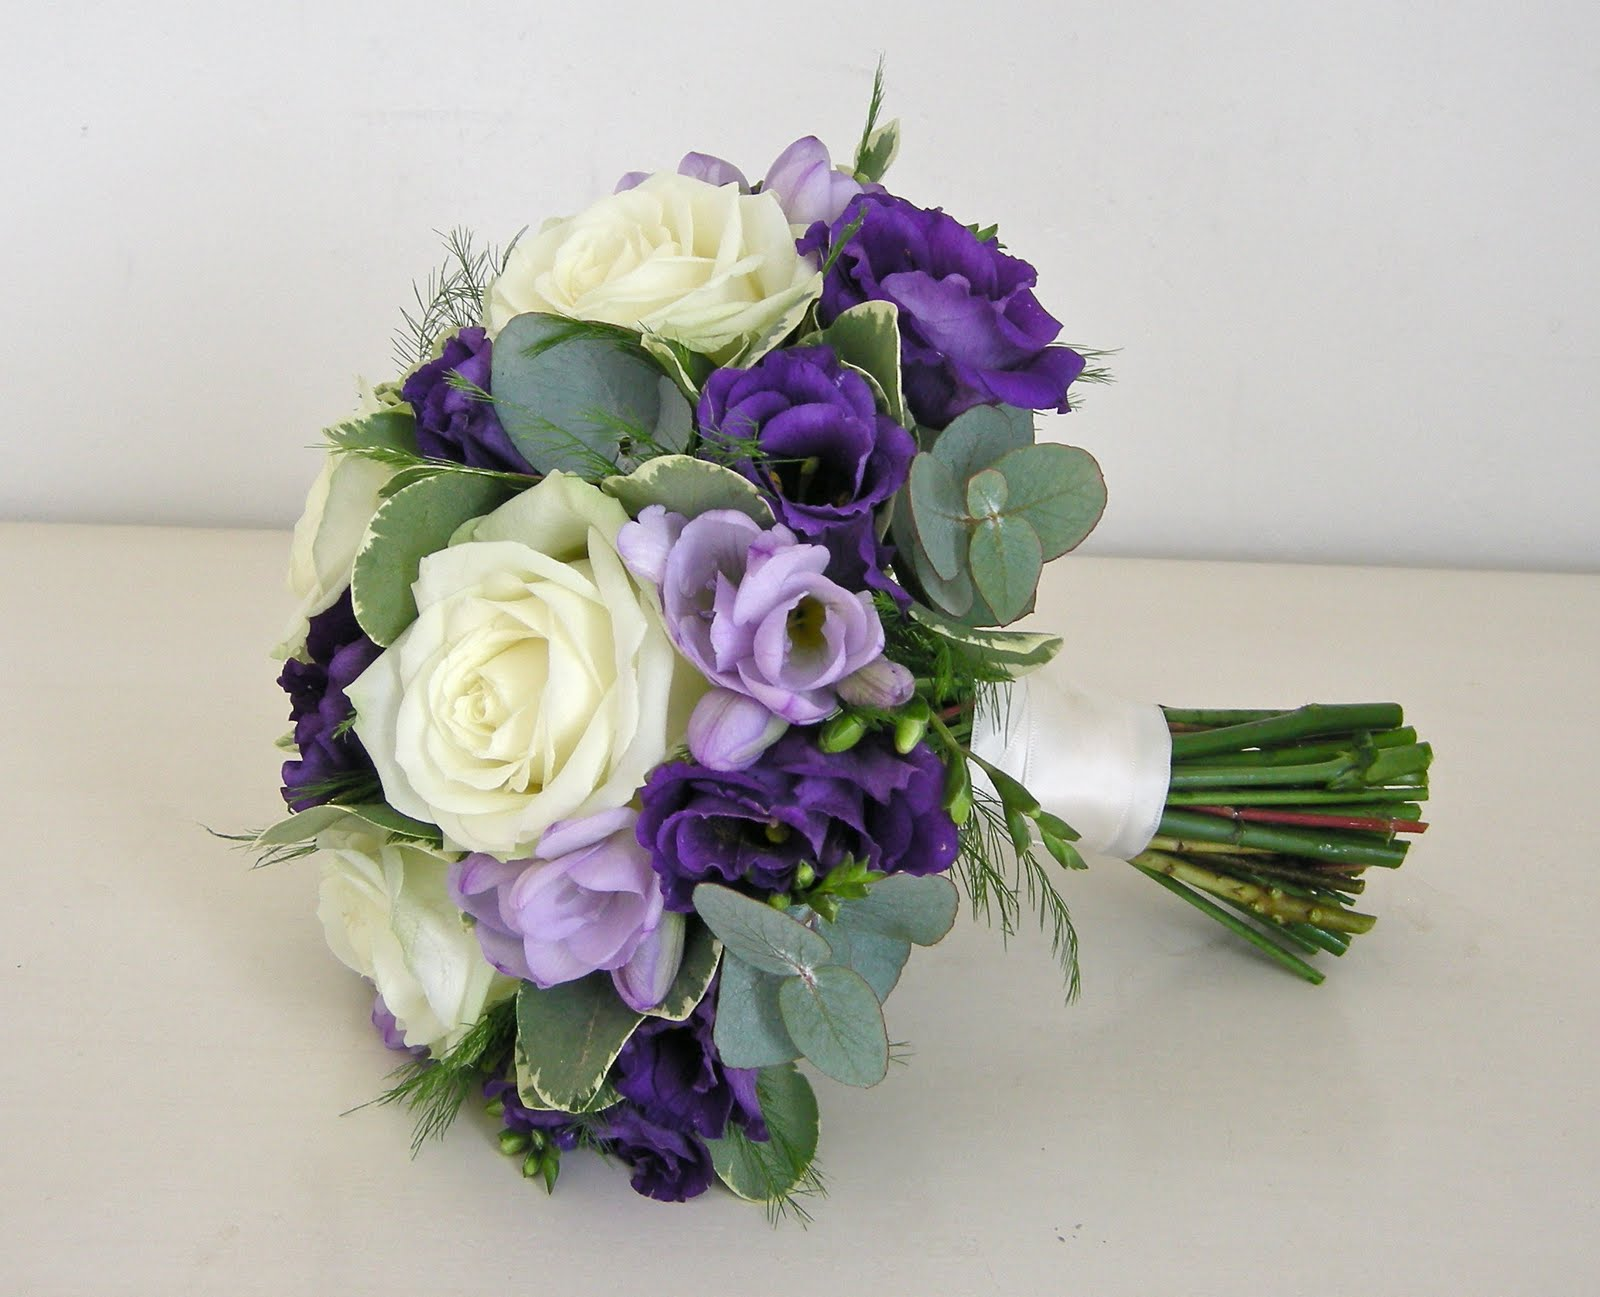 Purple wedding bouquets dahlia floral design creamy peonies carolyn 39 s bridal bouquet - Flowers good luck bridal bouquet ...